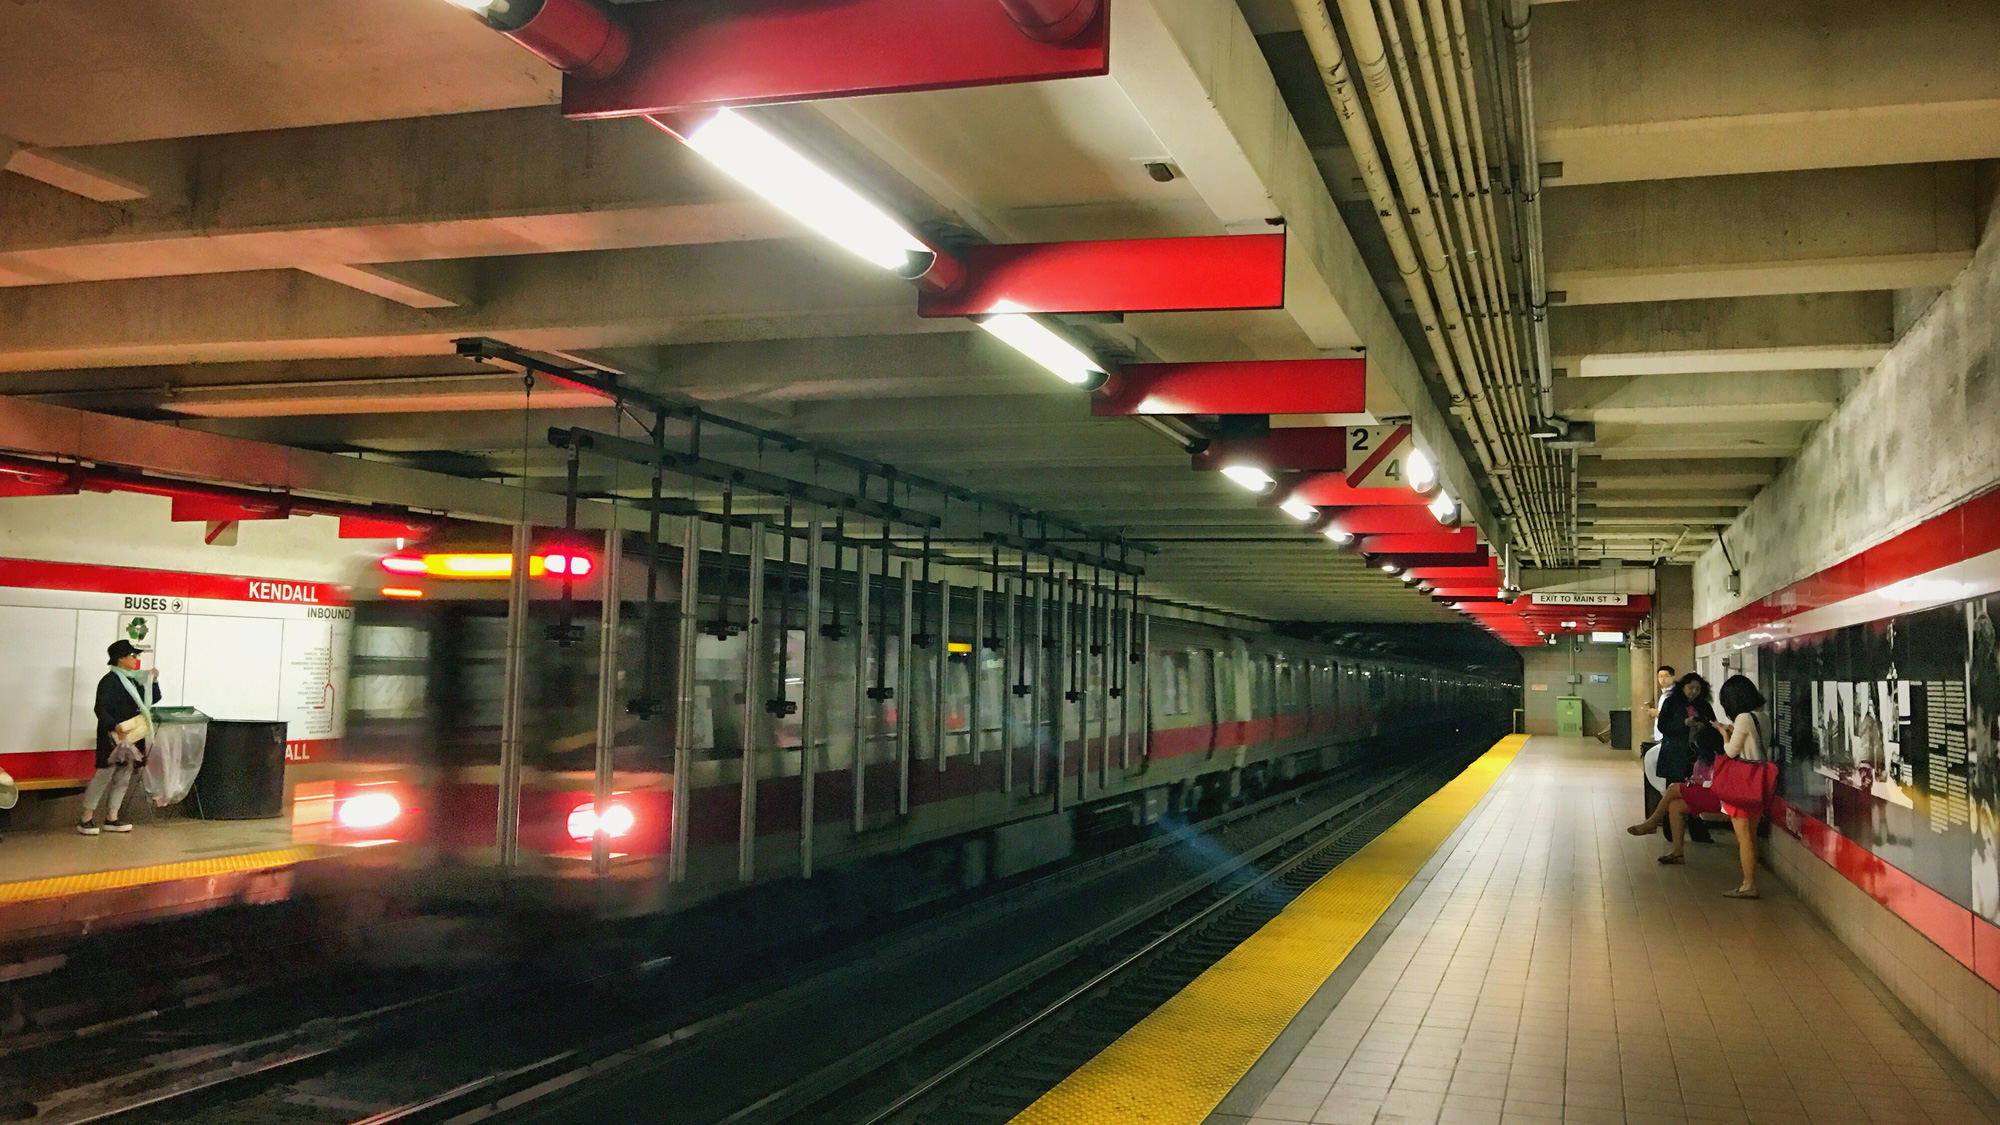 Kendall MIT Station